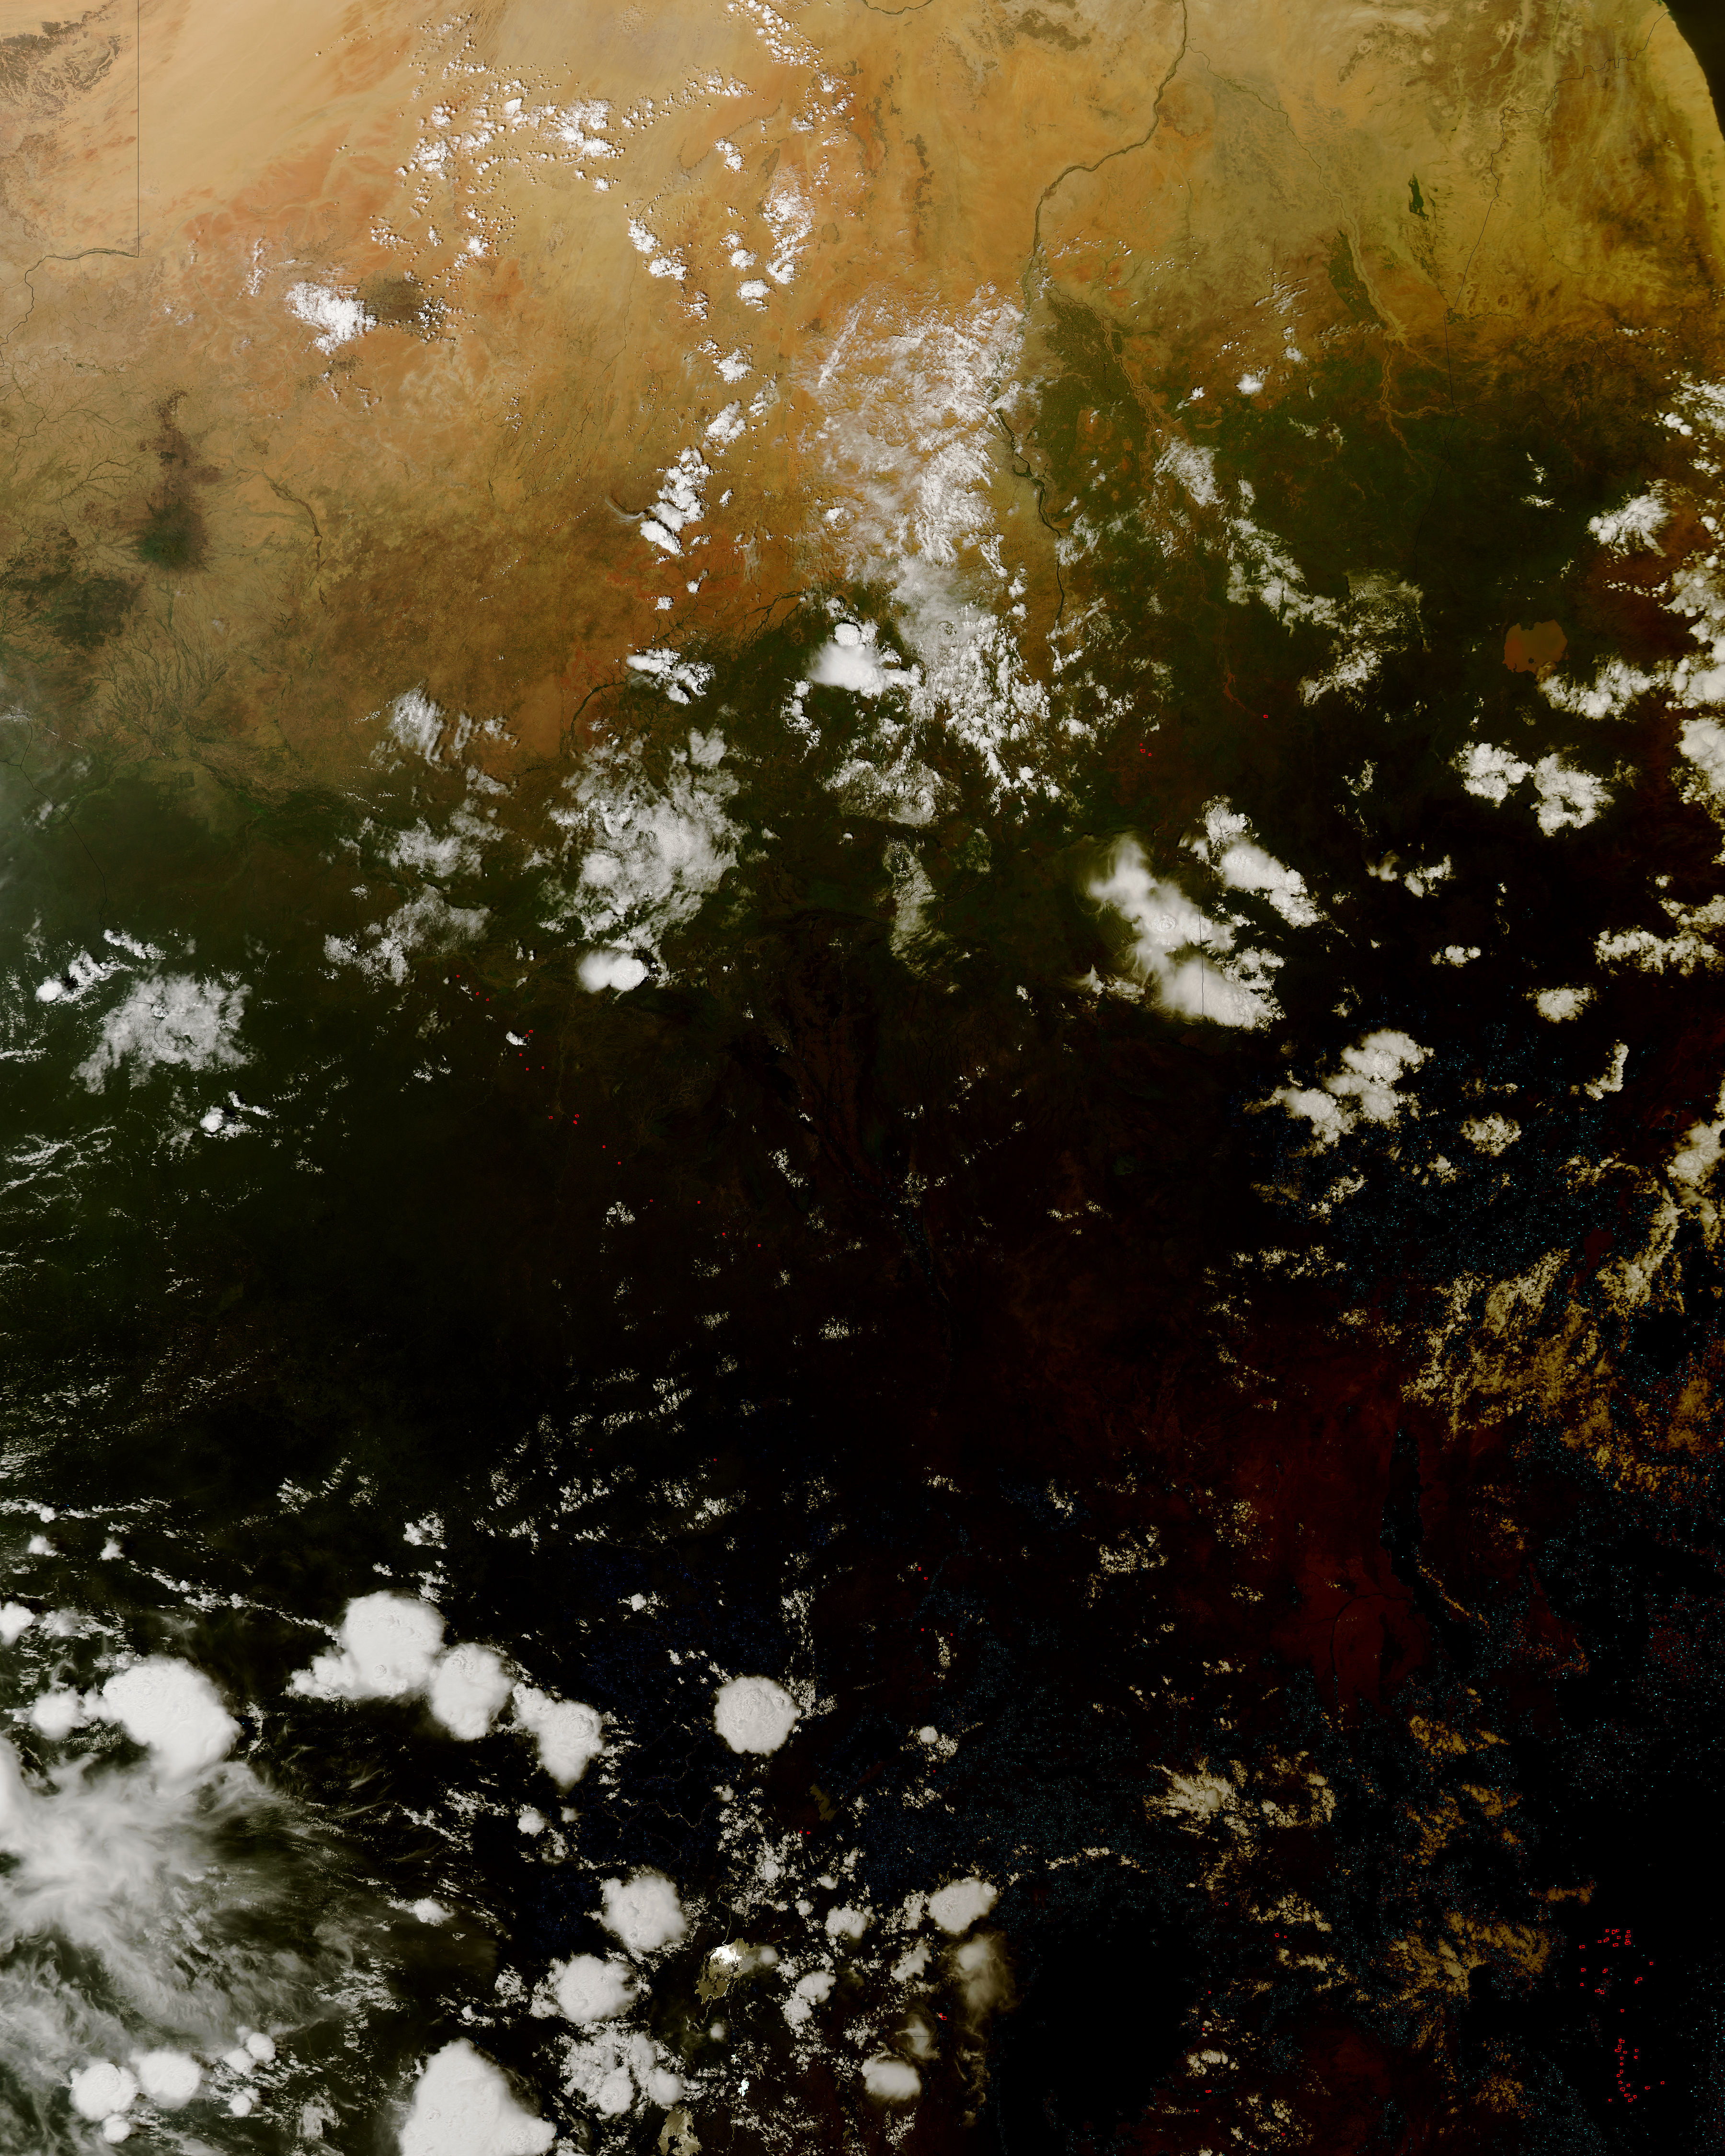 NASA Visible Earth: Solar eclipse over East Africa